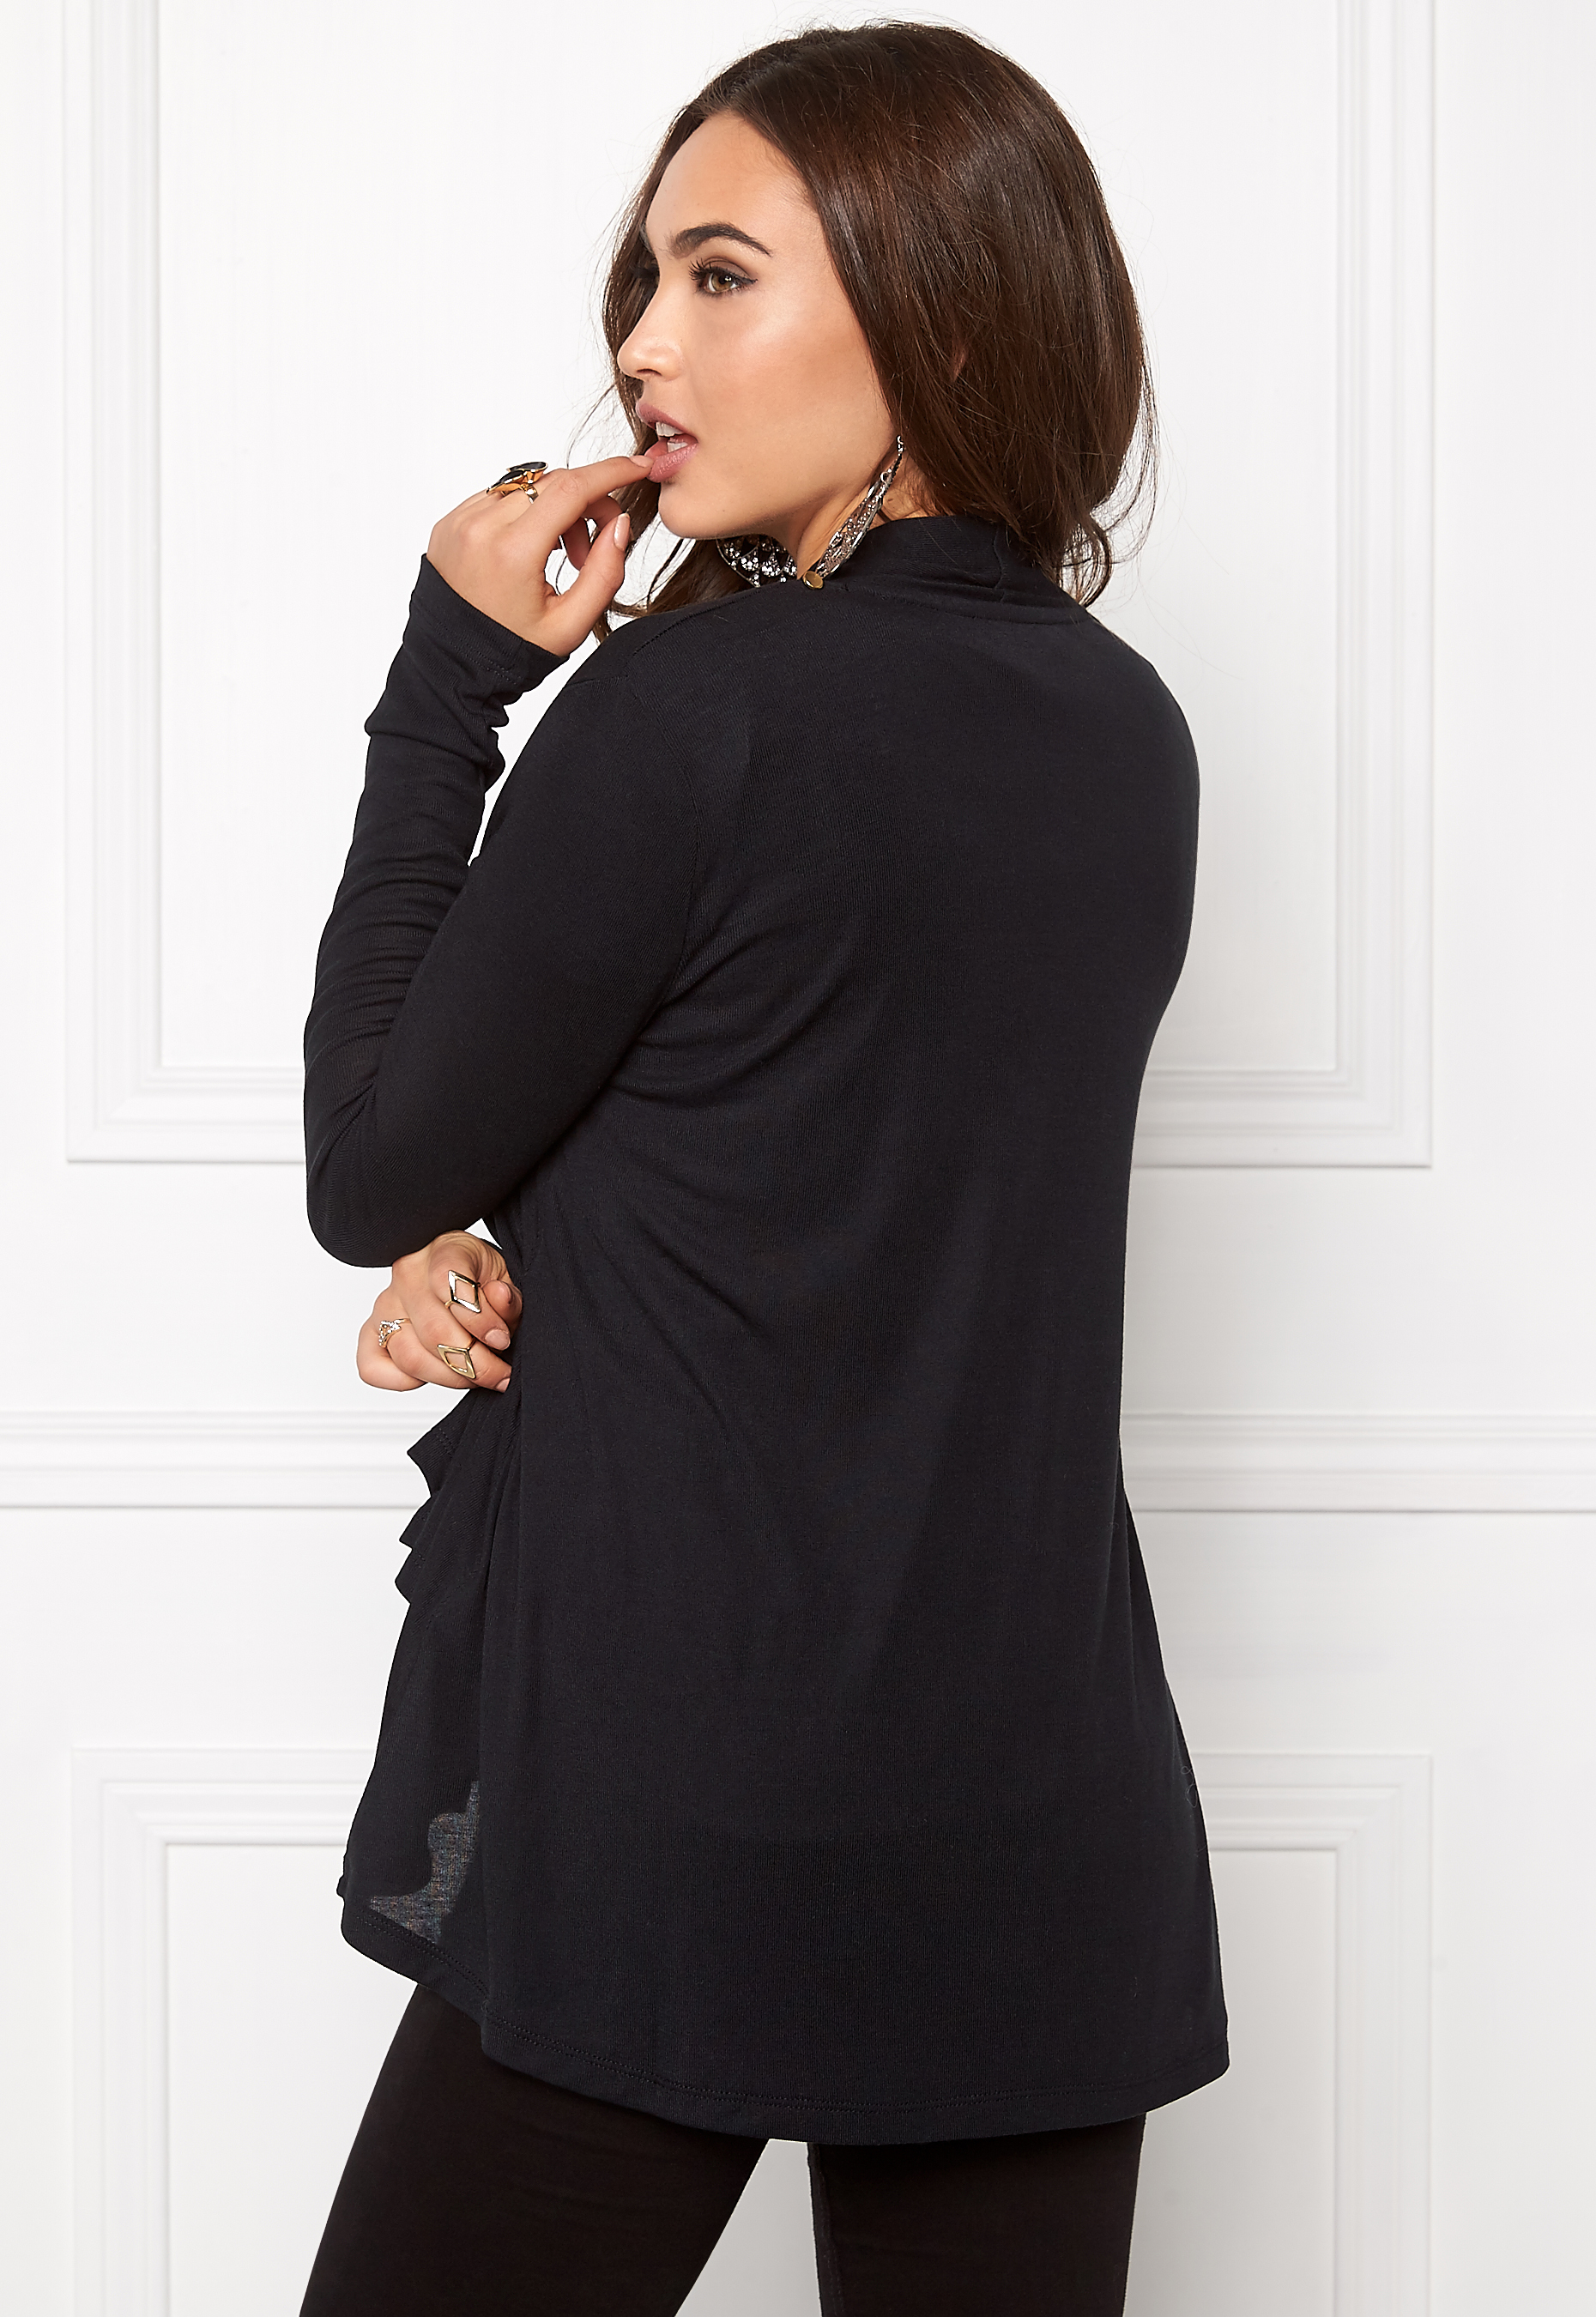 vila black single women Nellycom: vicama new wool coat - noos - vila - women - black new clothes, make - up and accessories every day over 800 brands unlimited variety.